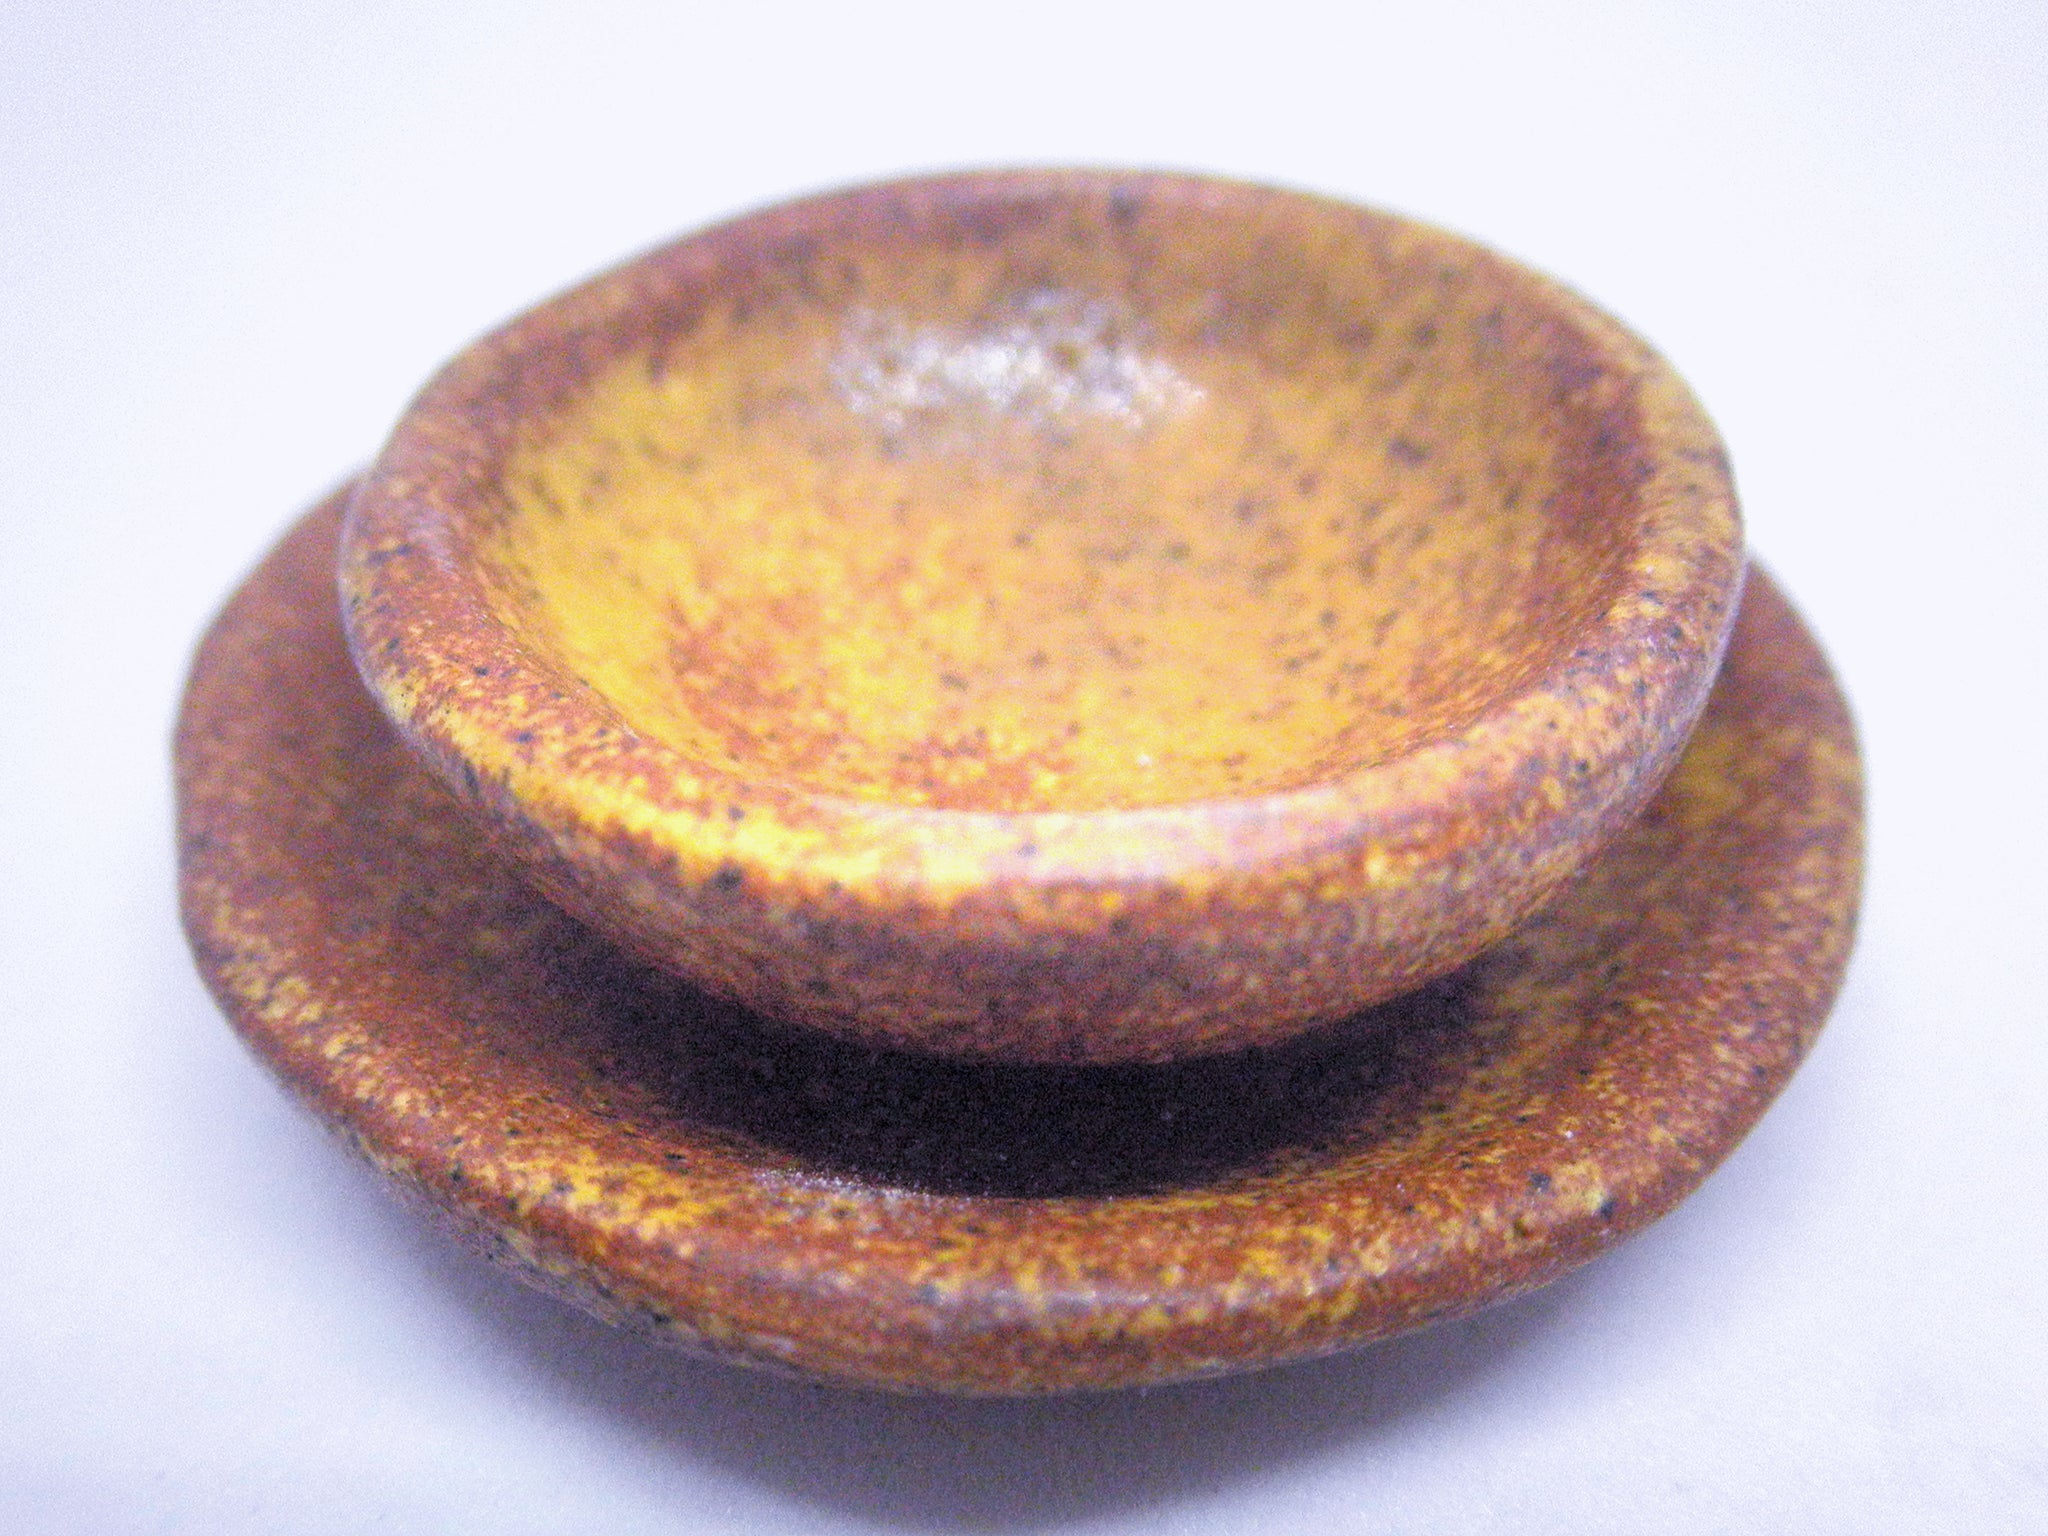 Miniature ceramic rustic stone like dinnerware